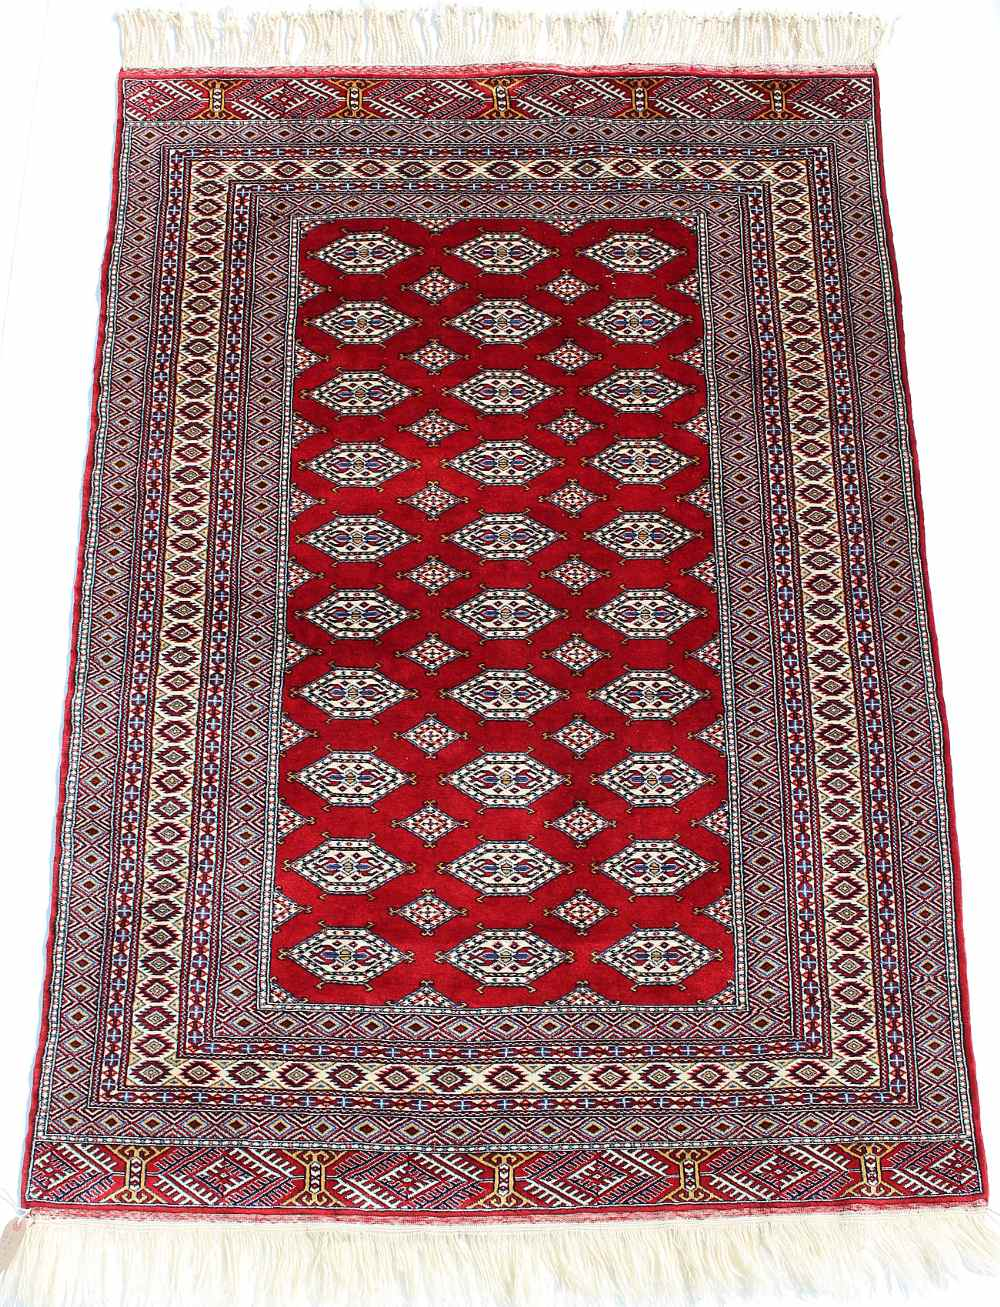 Property of a lady - a Turkoman rug with burgundy field, third quarter 20th century, condition